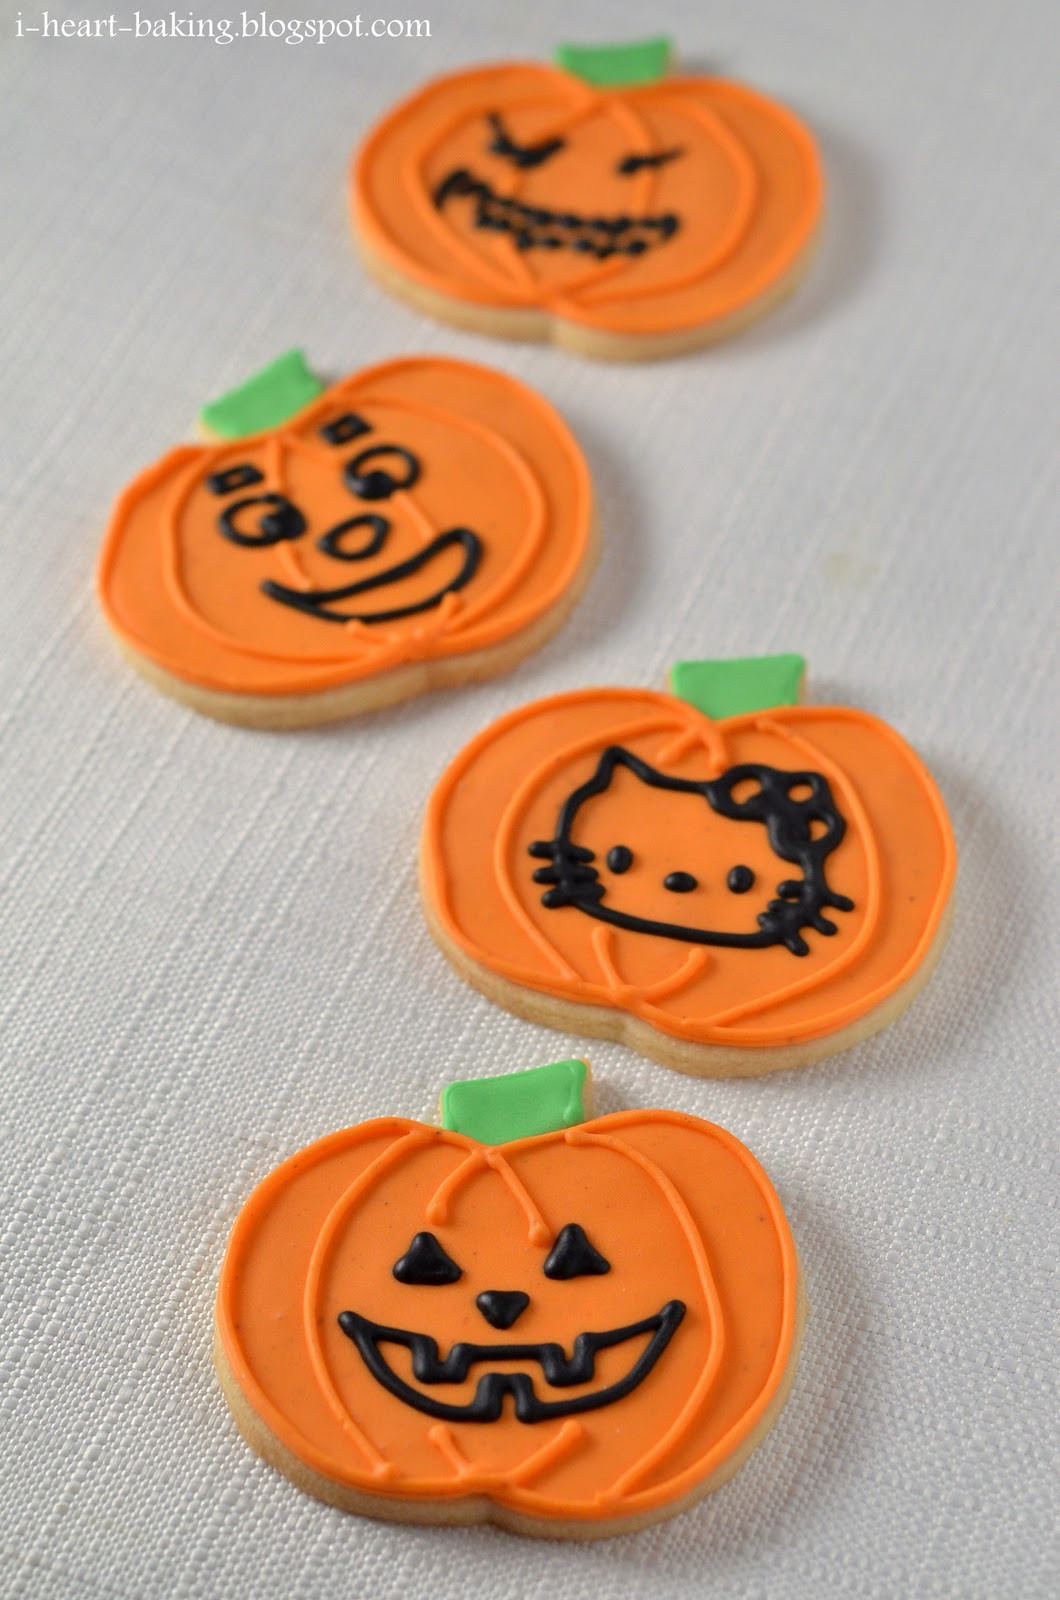 Halloween Pumpkin Cookies  i heart baking halloween cookies jack o lantern